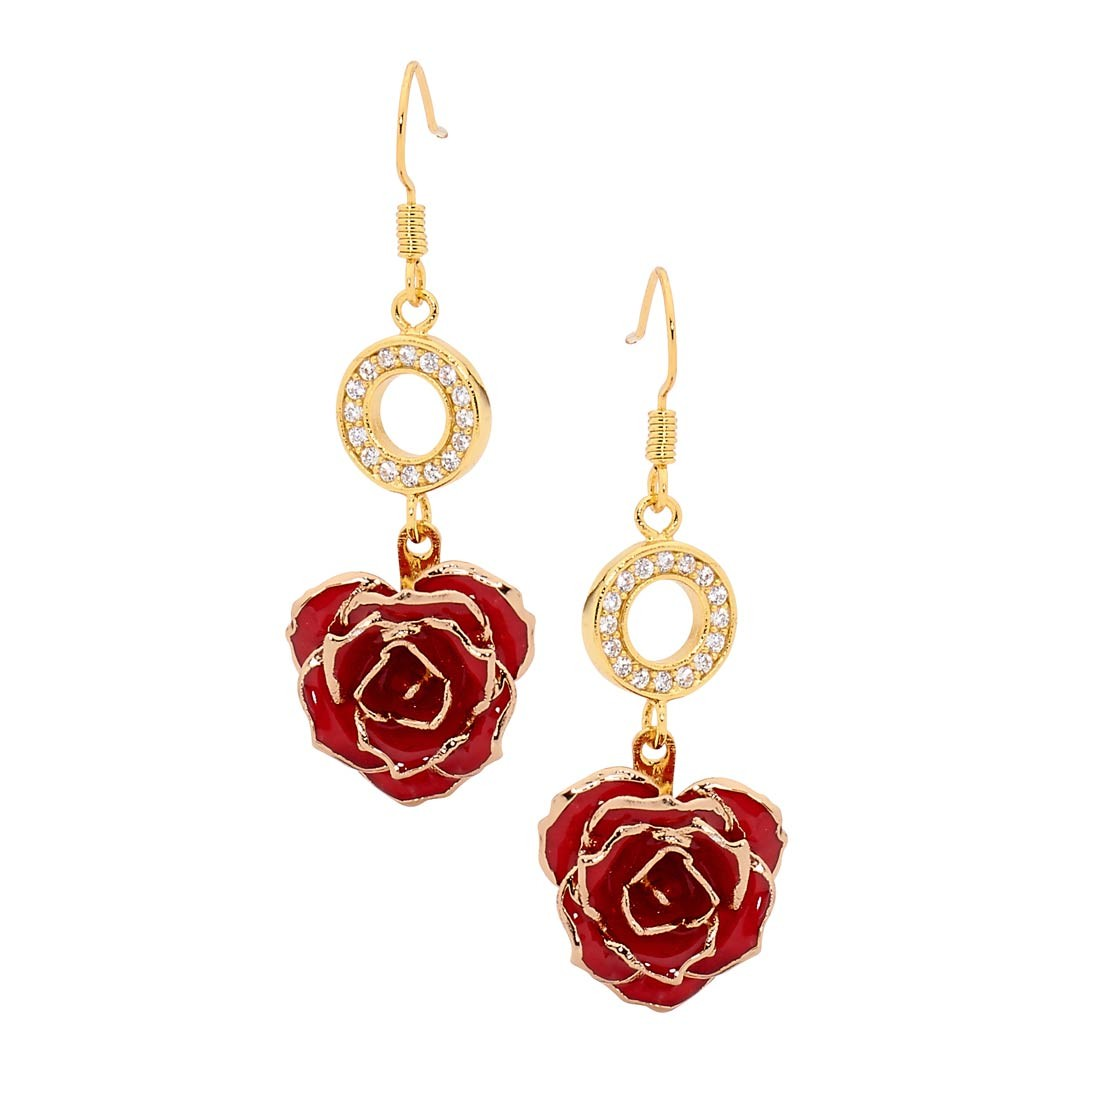 GoldDipped Rose Red Matched Jewellery Set in Heart Theme